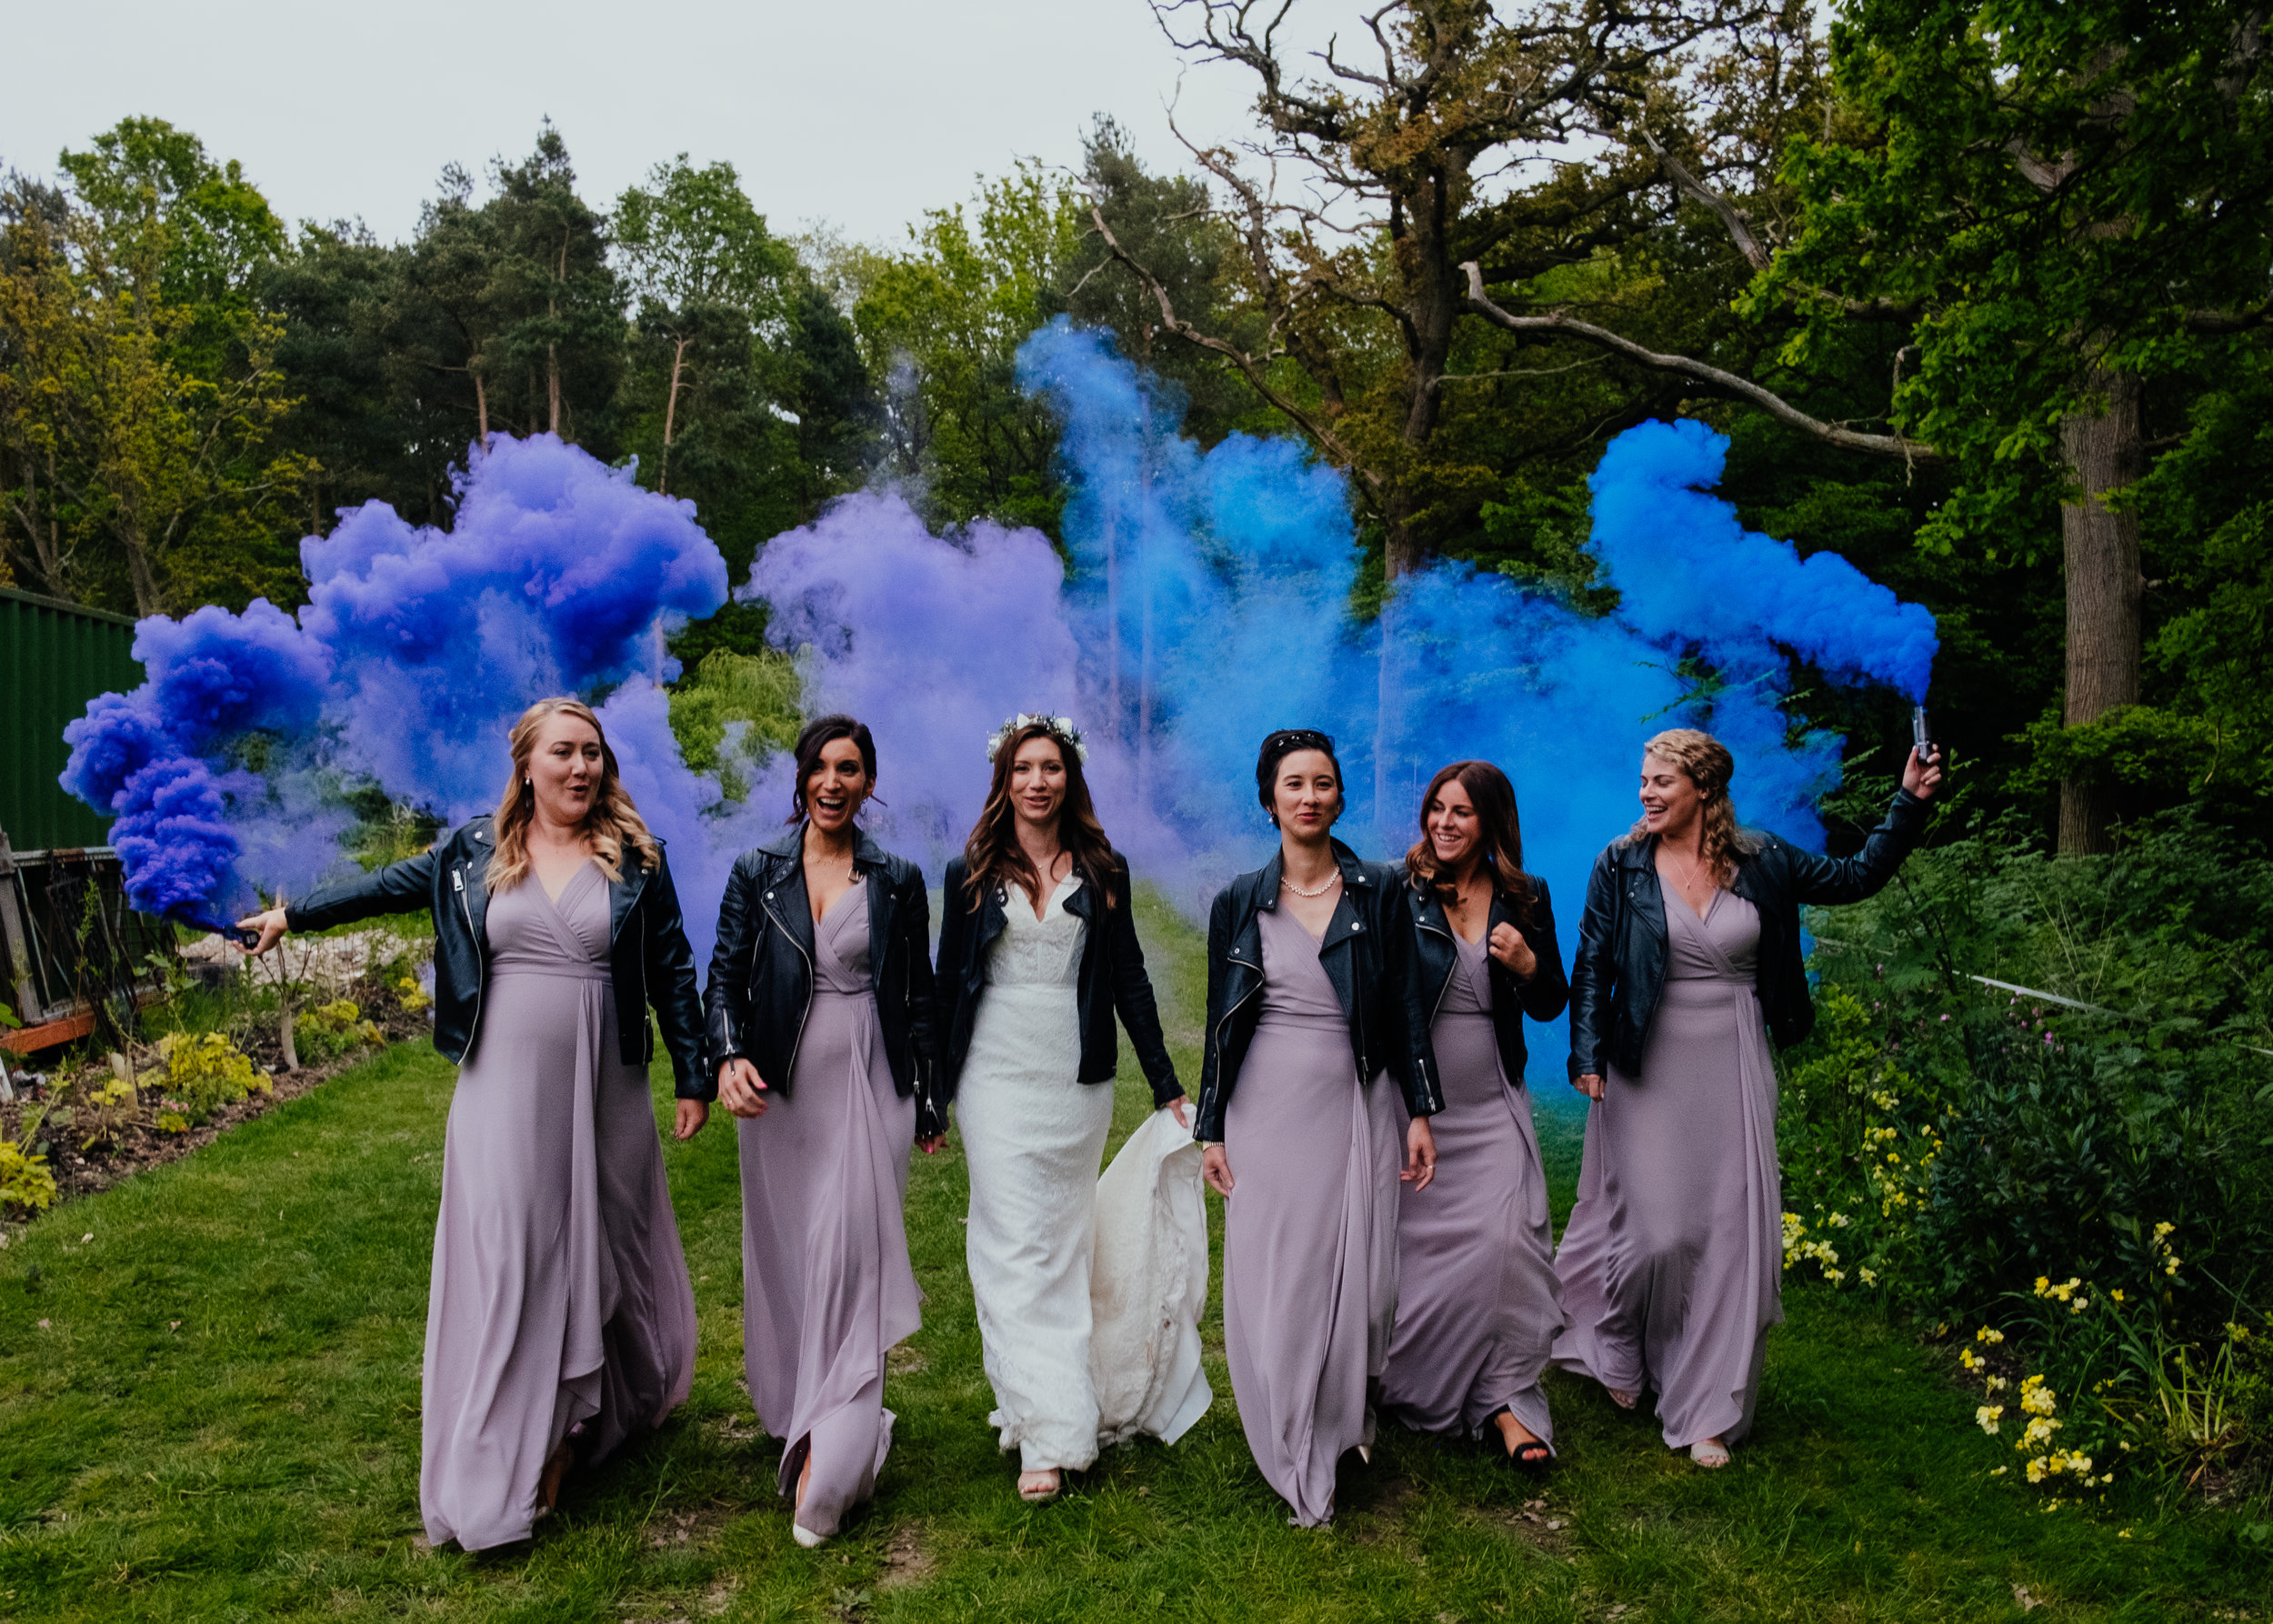 Badass bridesmaids walking along with the bride holding coloured smoke grenades